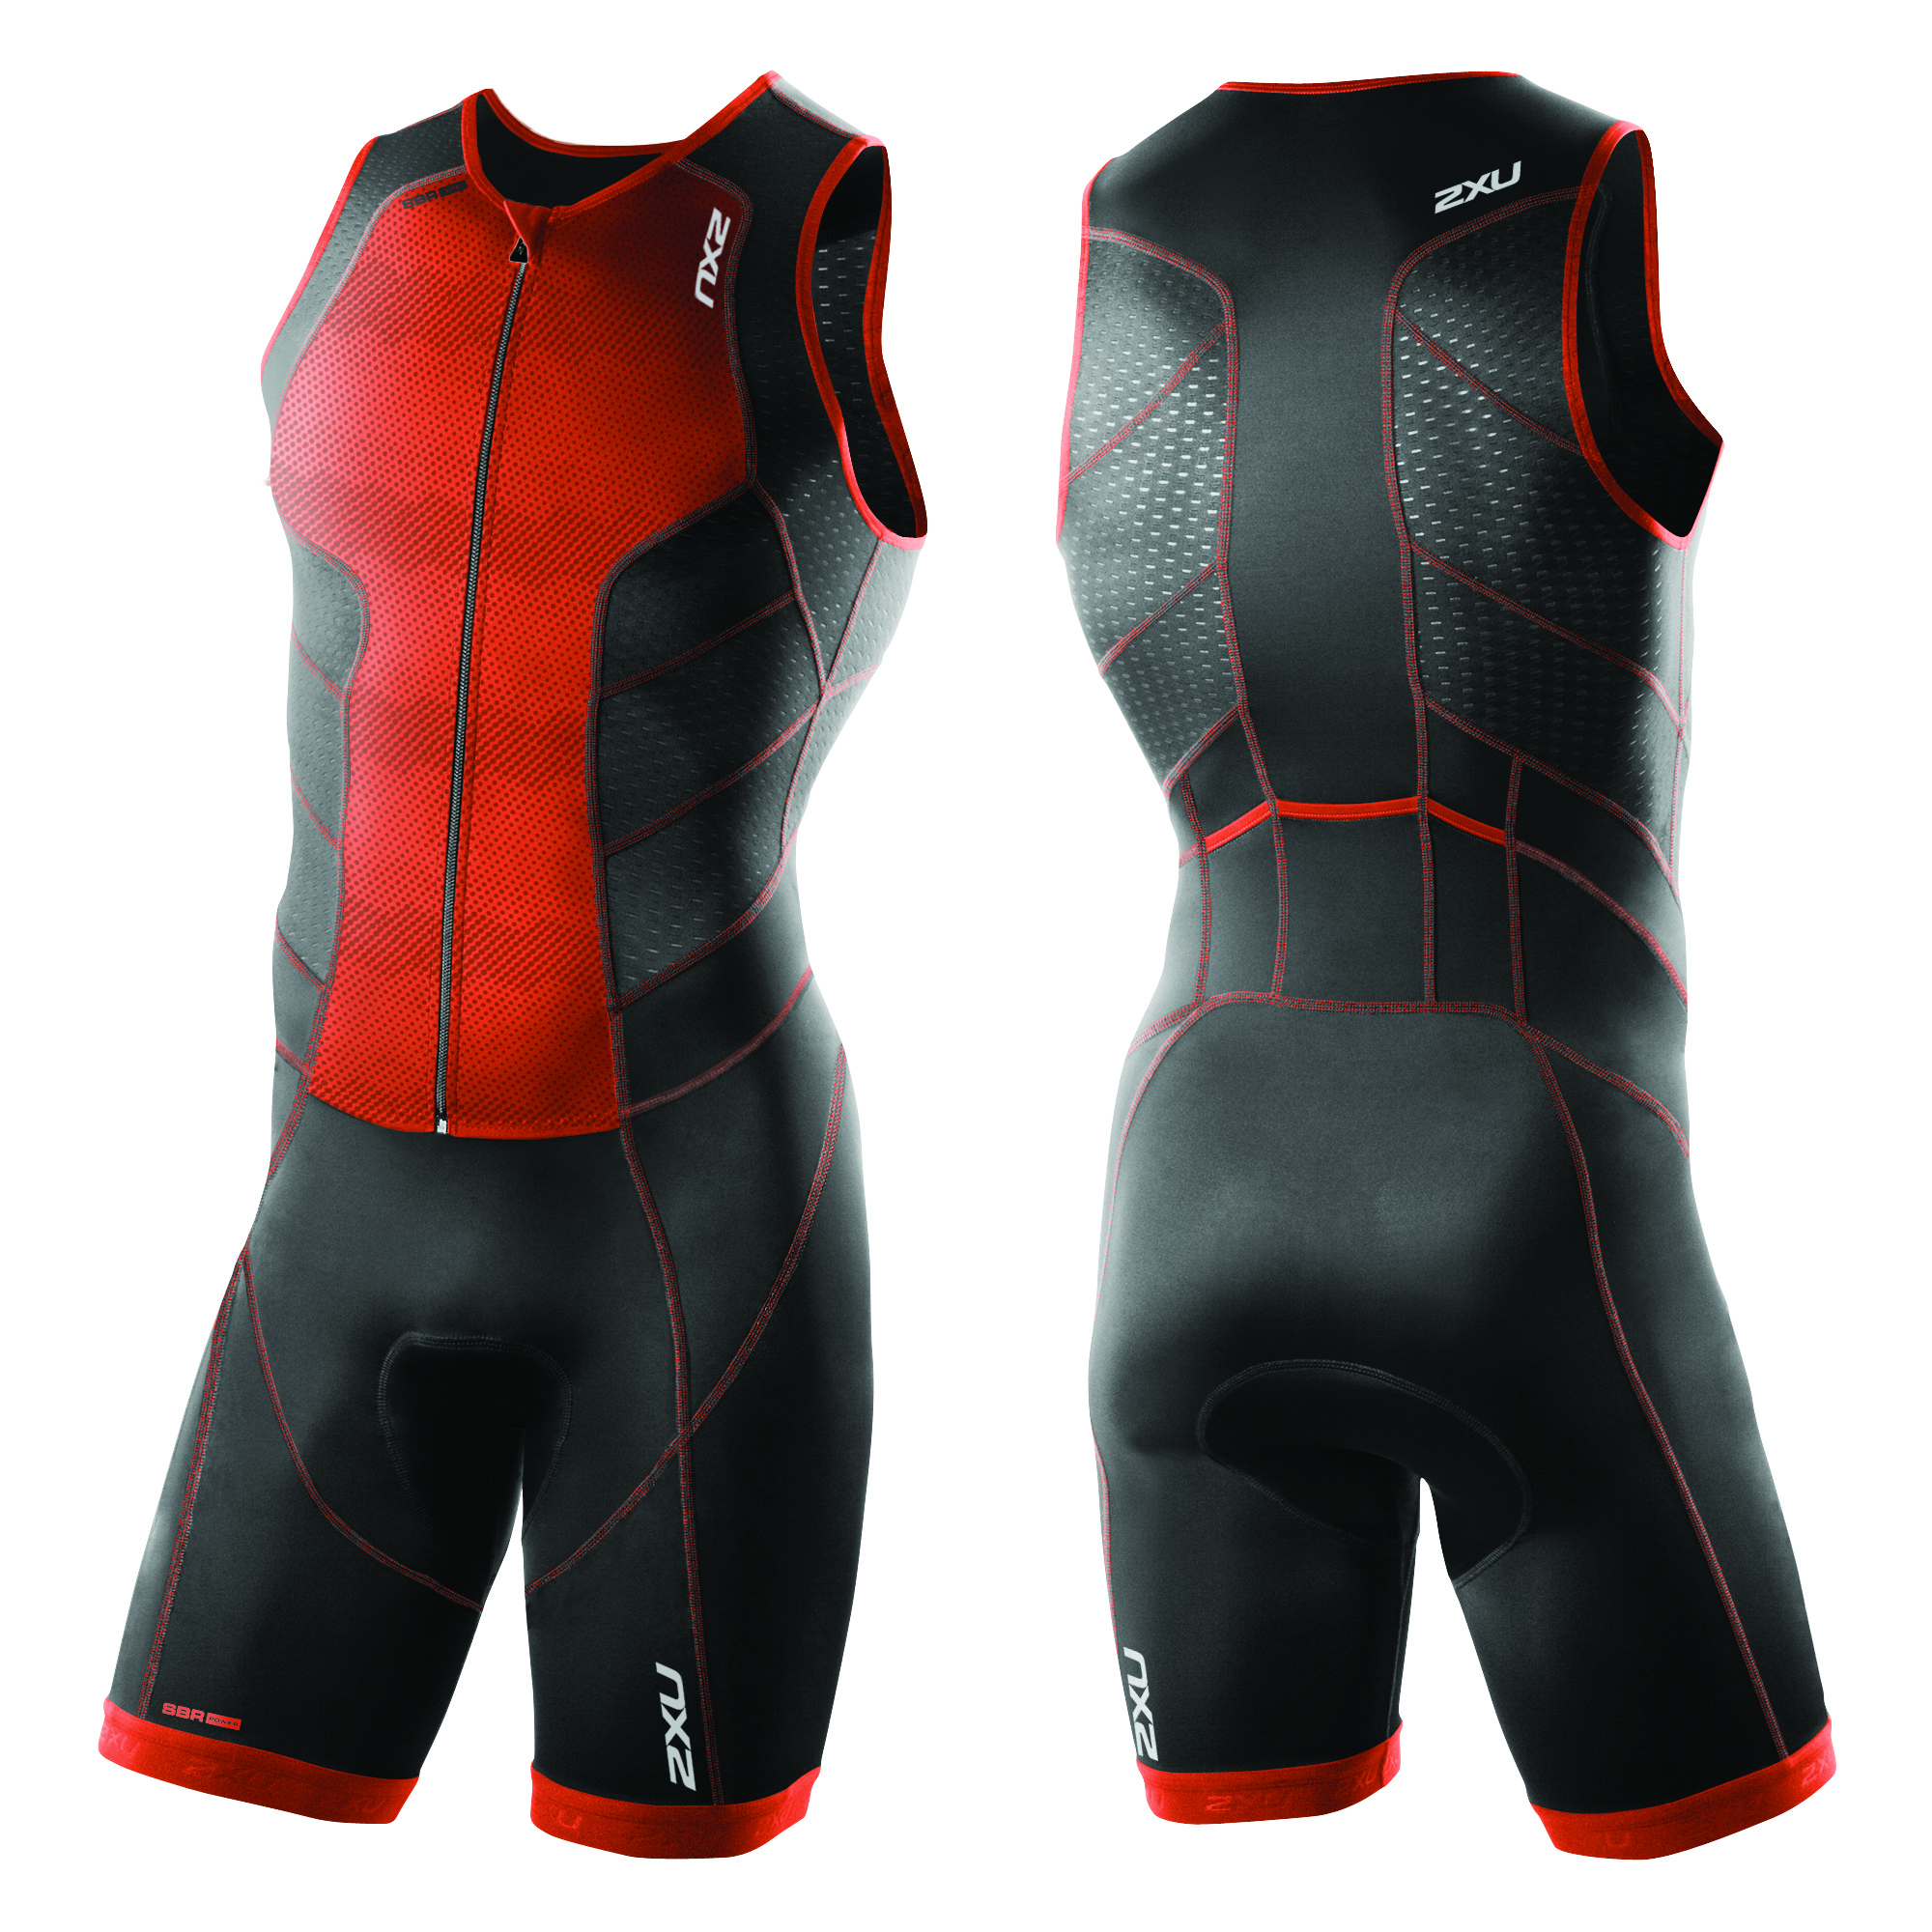 BODY TRIATHLON 2XU PERFORM FULL FRONT ZIP MEN'S TRISUIT MT3859D desert red print black